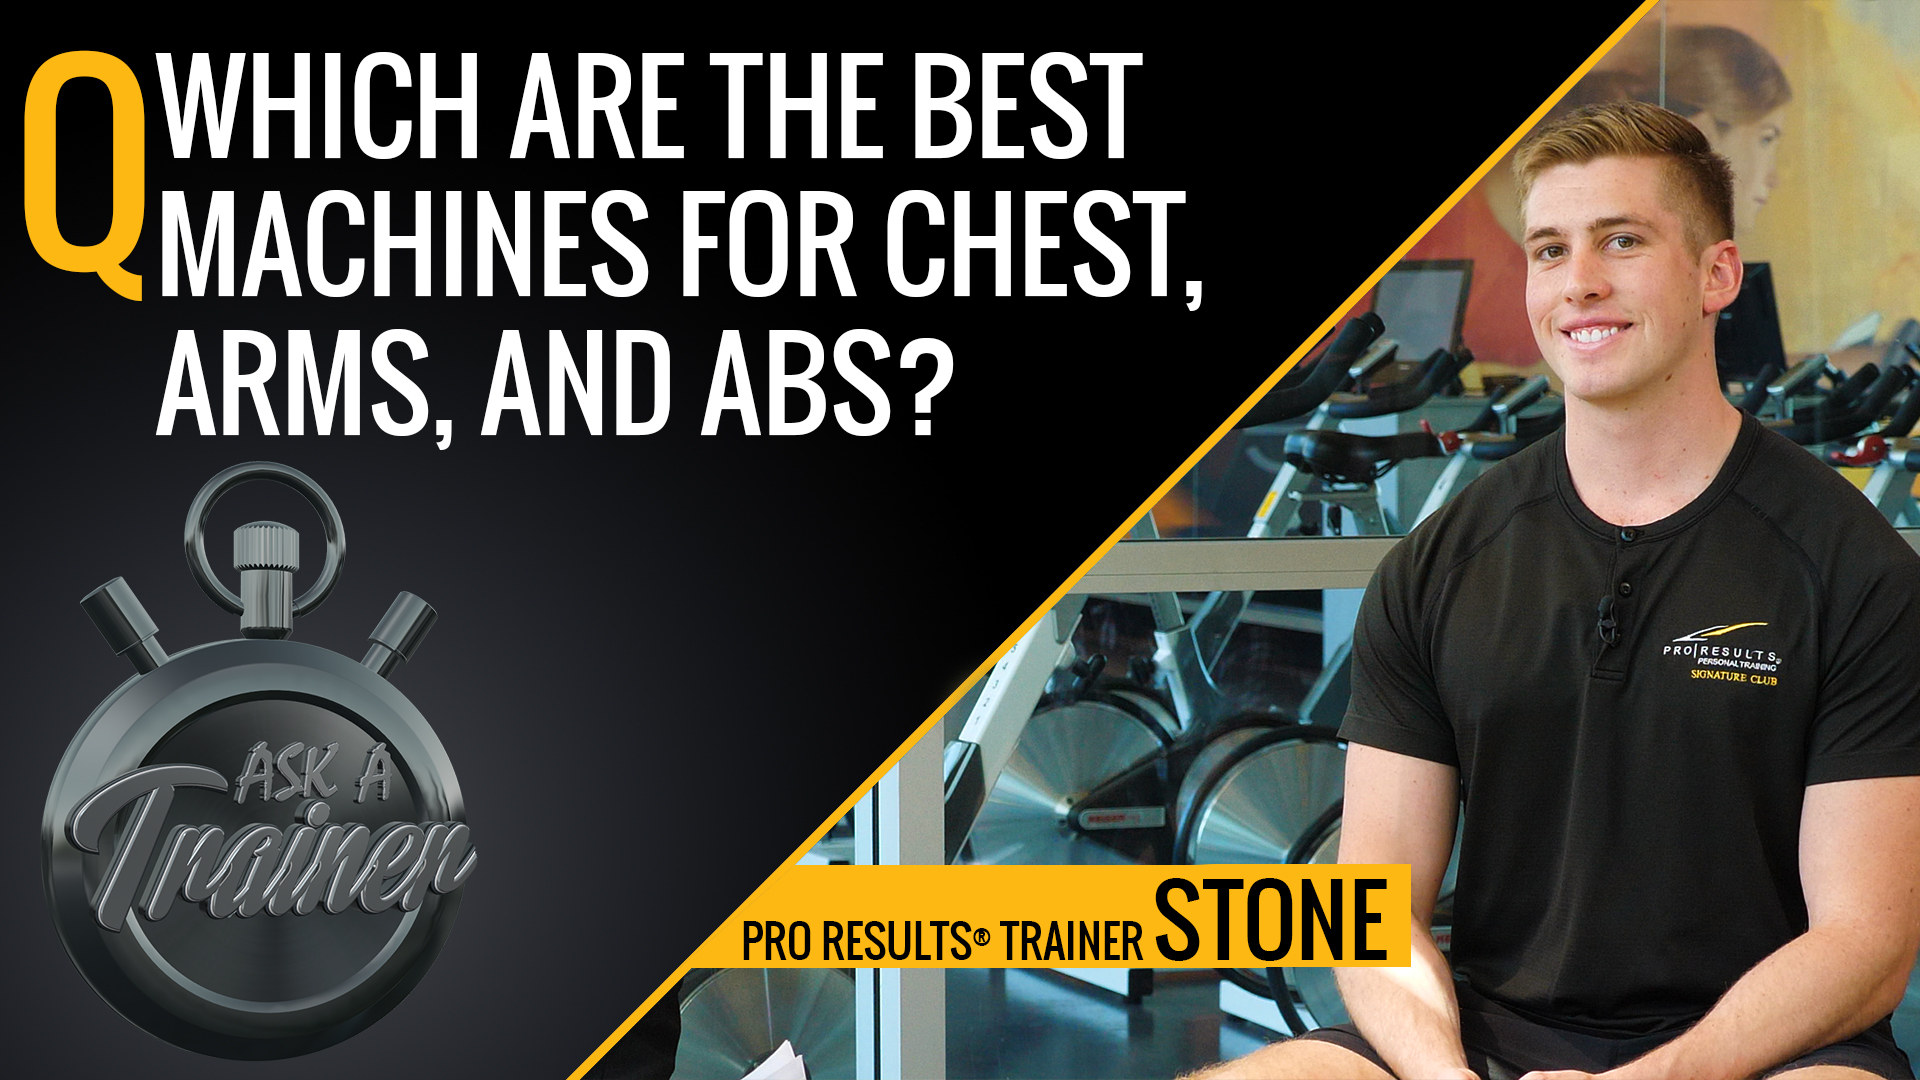 Ask A Trainer, LA Fitness, ask your fitness question, exercise advice, exercises, fitness, fitness advice, health, LAF, Pro Results® trainers, Q+A, PT related questions, ask our trainers, best machines for chest, best machines for arms, best machine for abs, how to train your abs, ab workouts, arm workouts, chest workouts